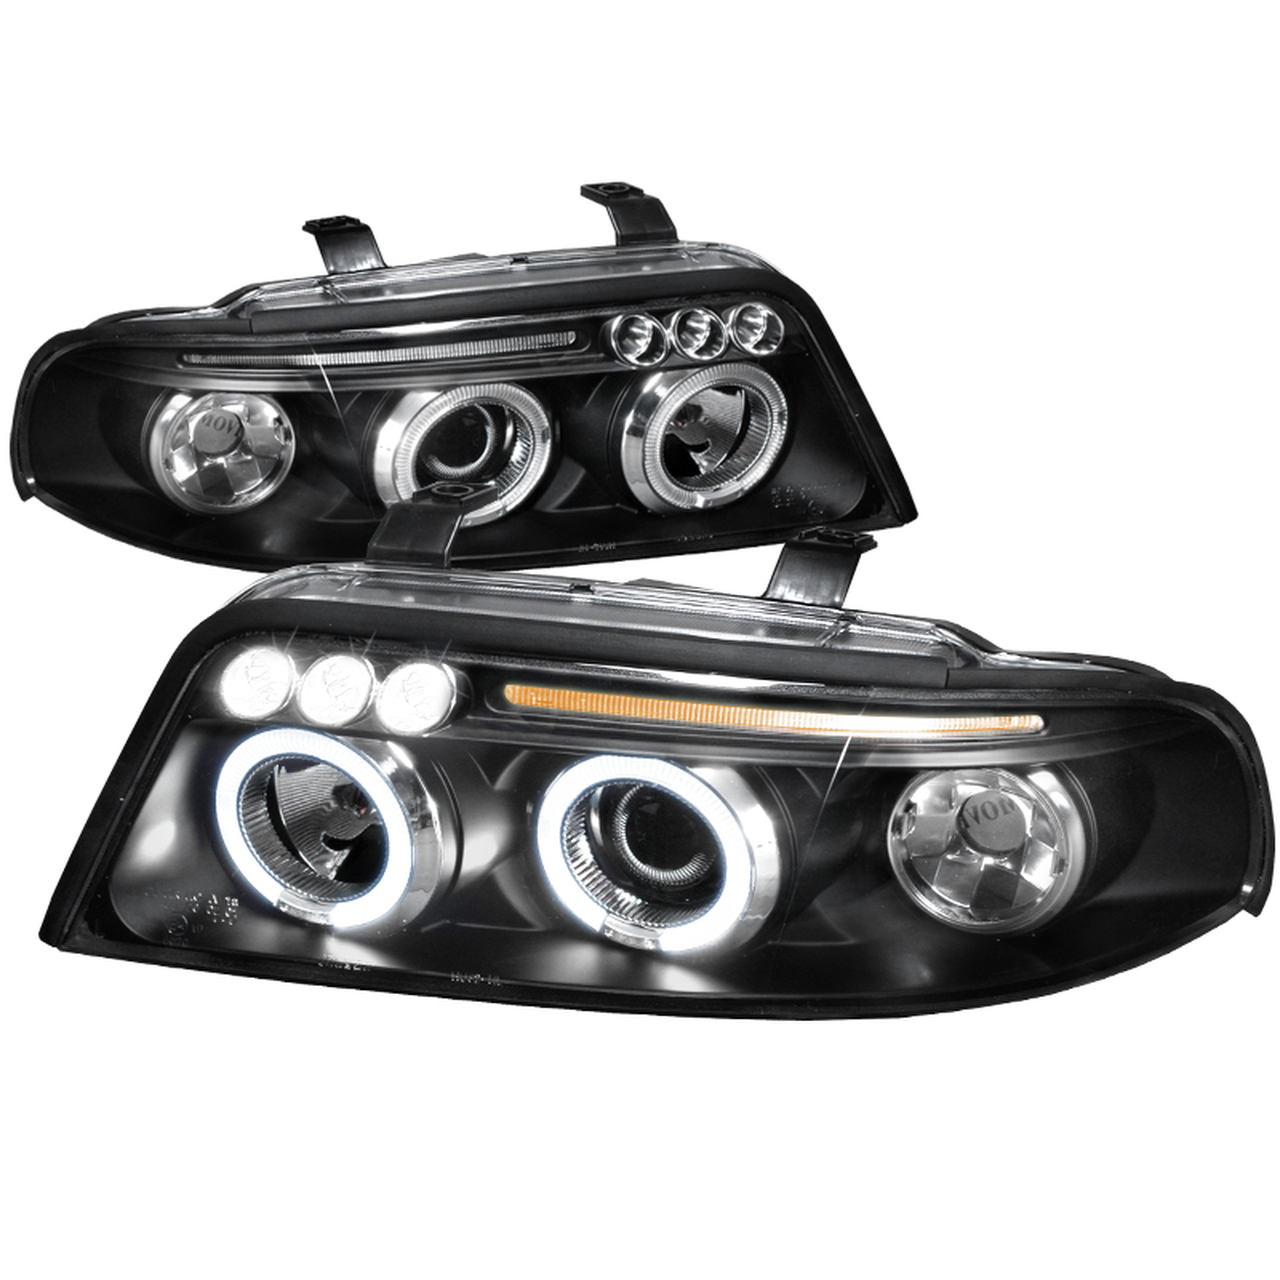 Spec-D Tuning Black Projector Headlights - Spec-D Tuning LHP-A400JM-TM